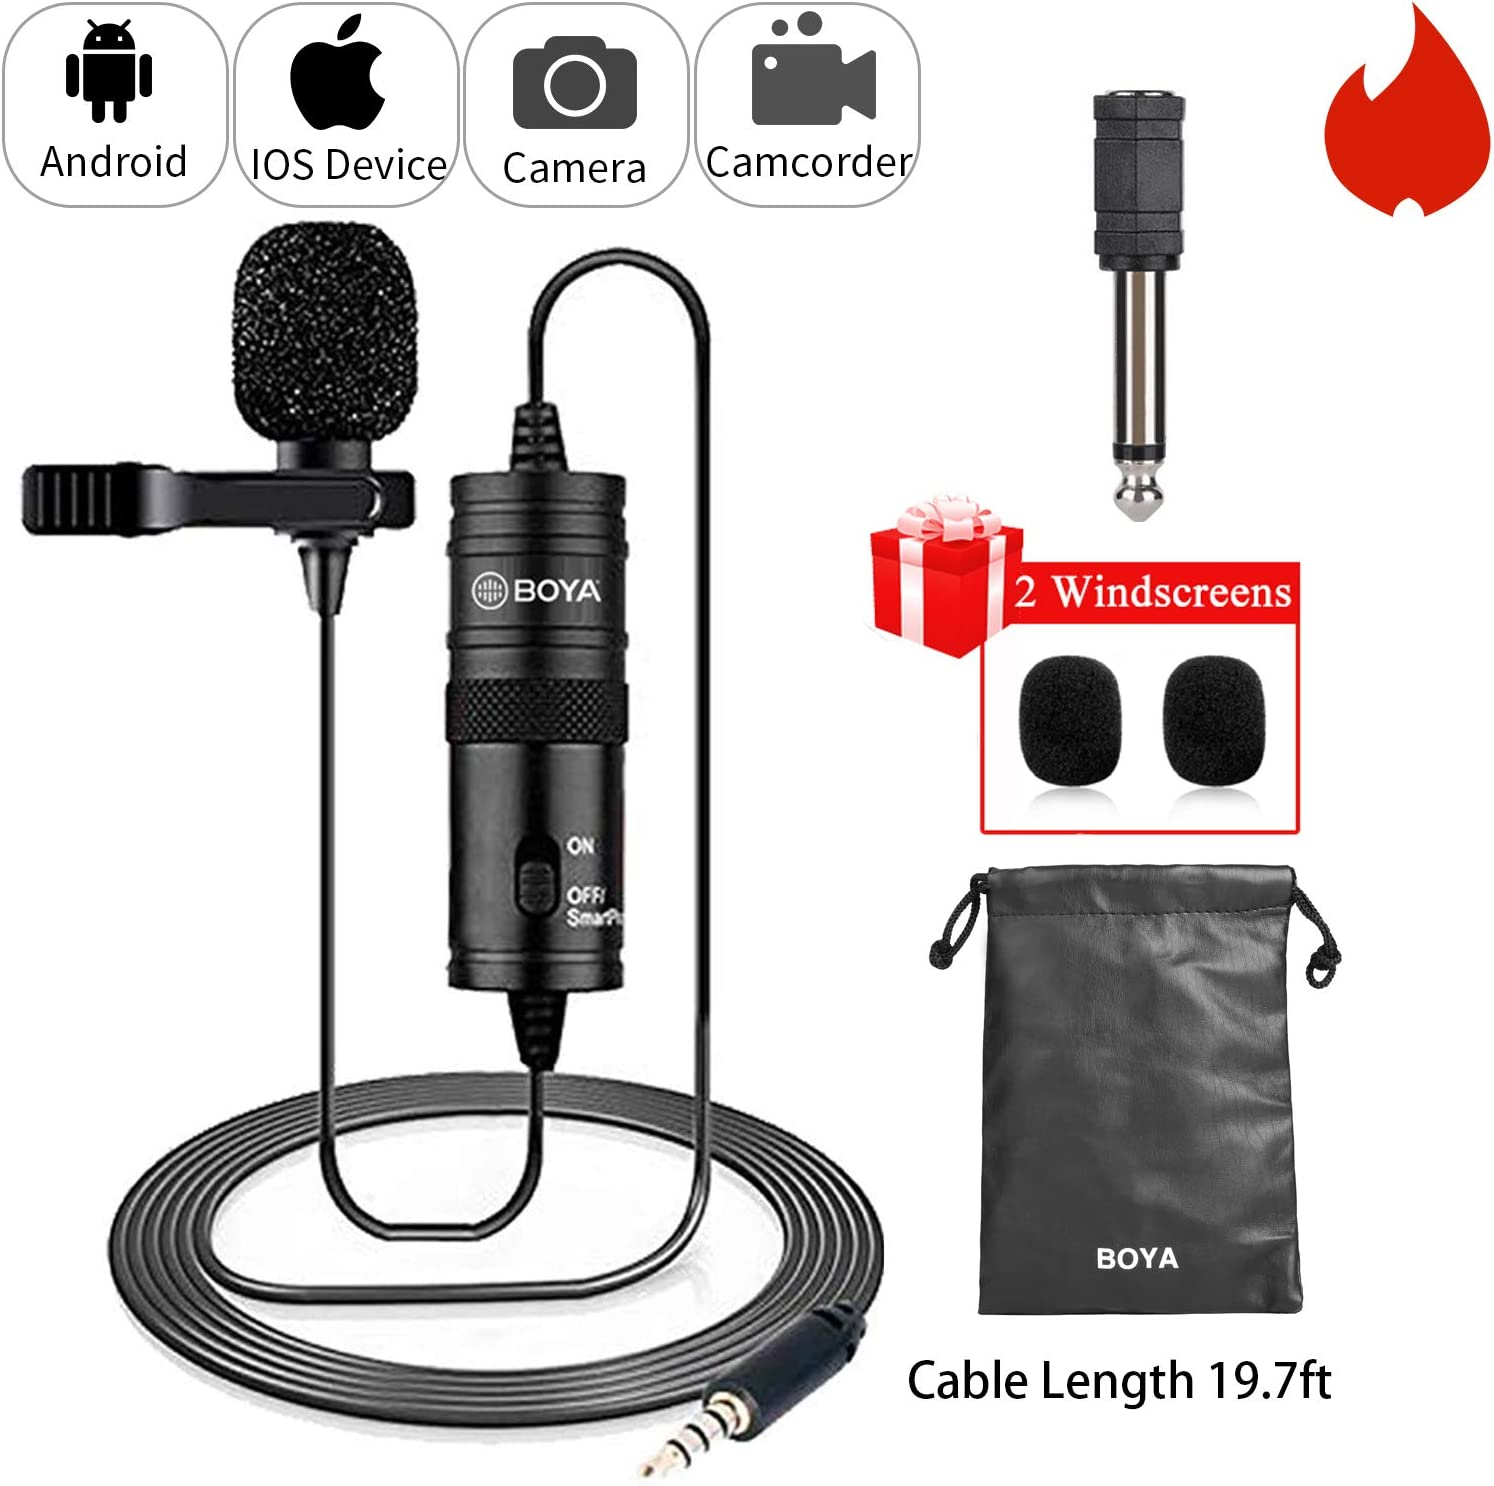 19 Feet Lavalier Microphone for Canon iPhone Podcast, BOYA Omnidirectional Condenser Recording Mic for Nikon Sony iPhone 8 8 plus 7 6 6s Plus DSLR Camcorder Audio Recorder Youtube Interview Video 71Gq9niMz9L